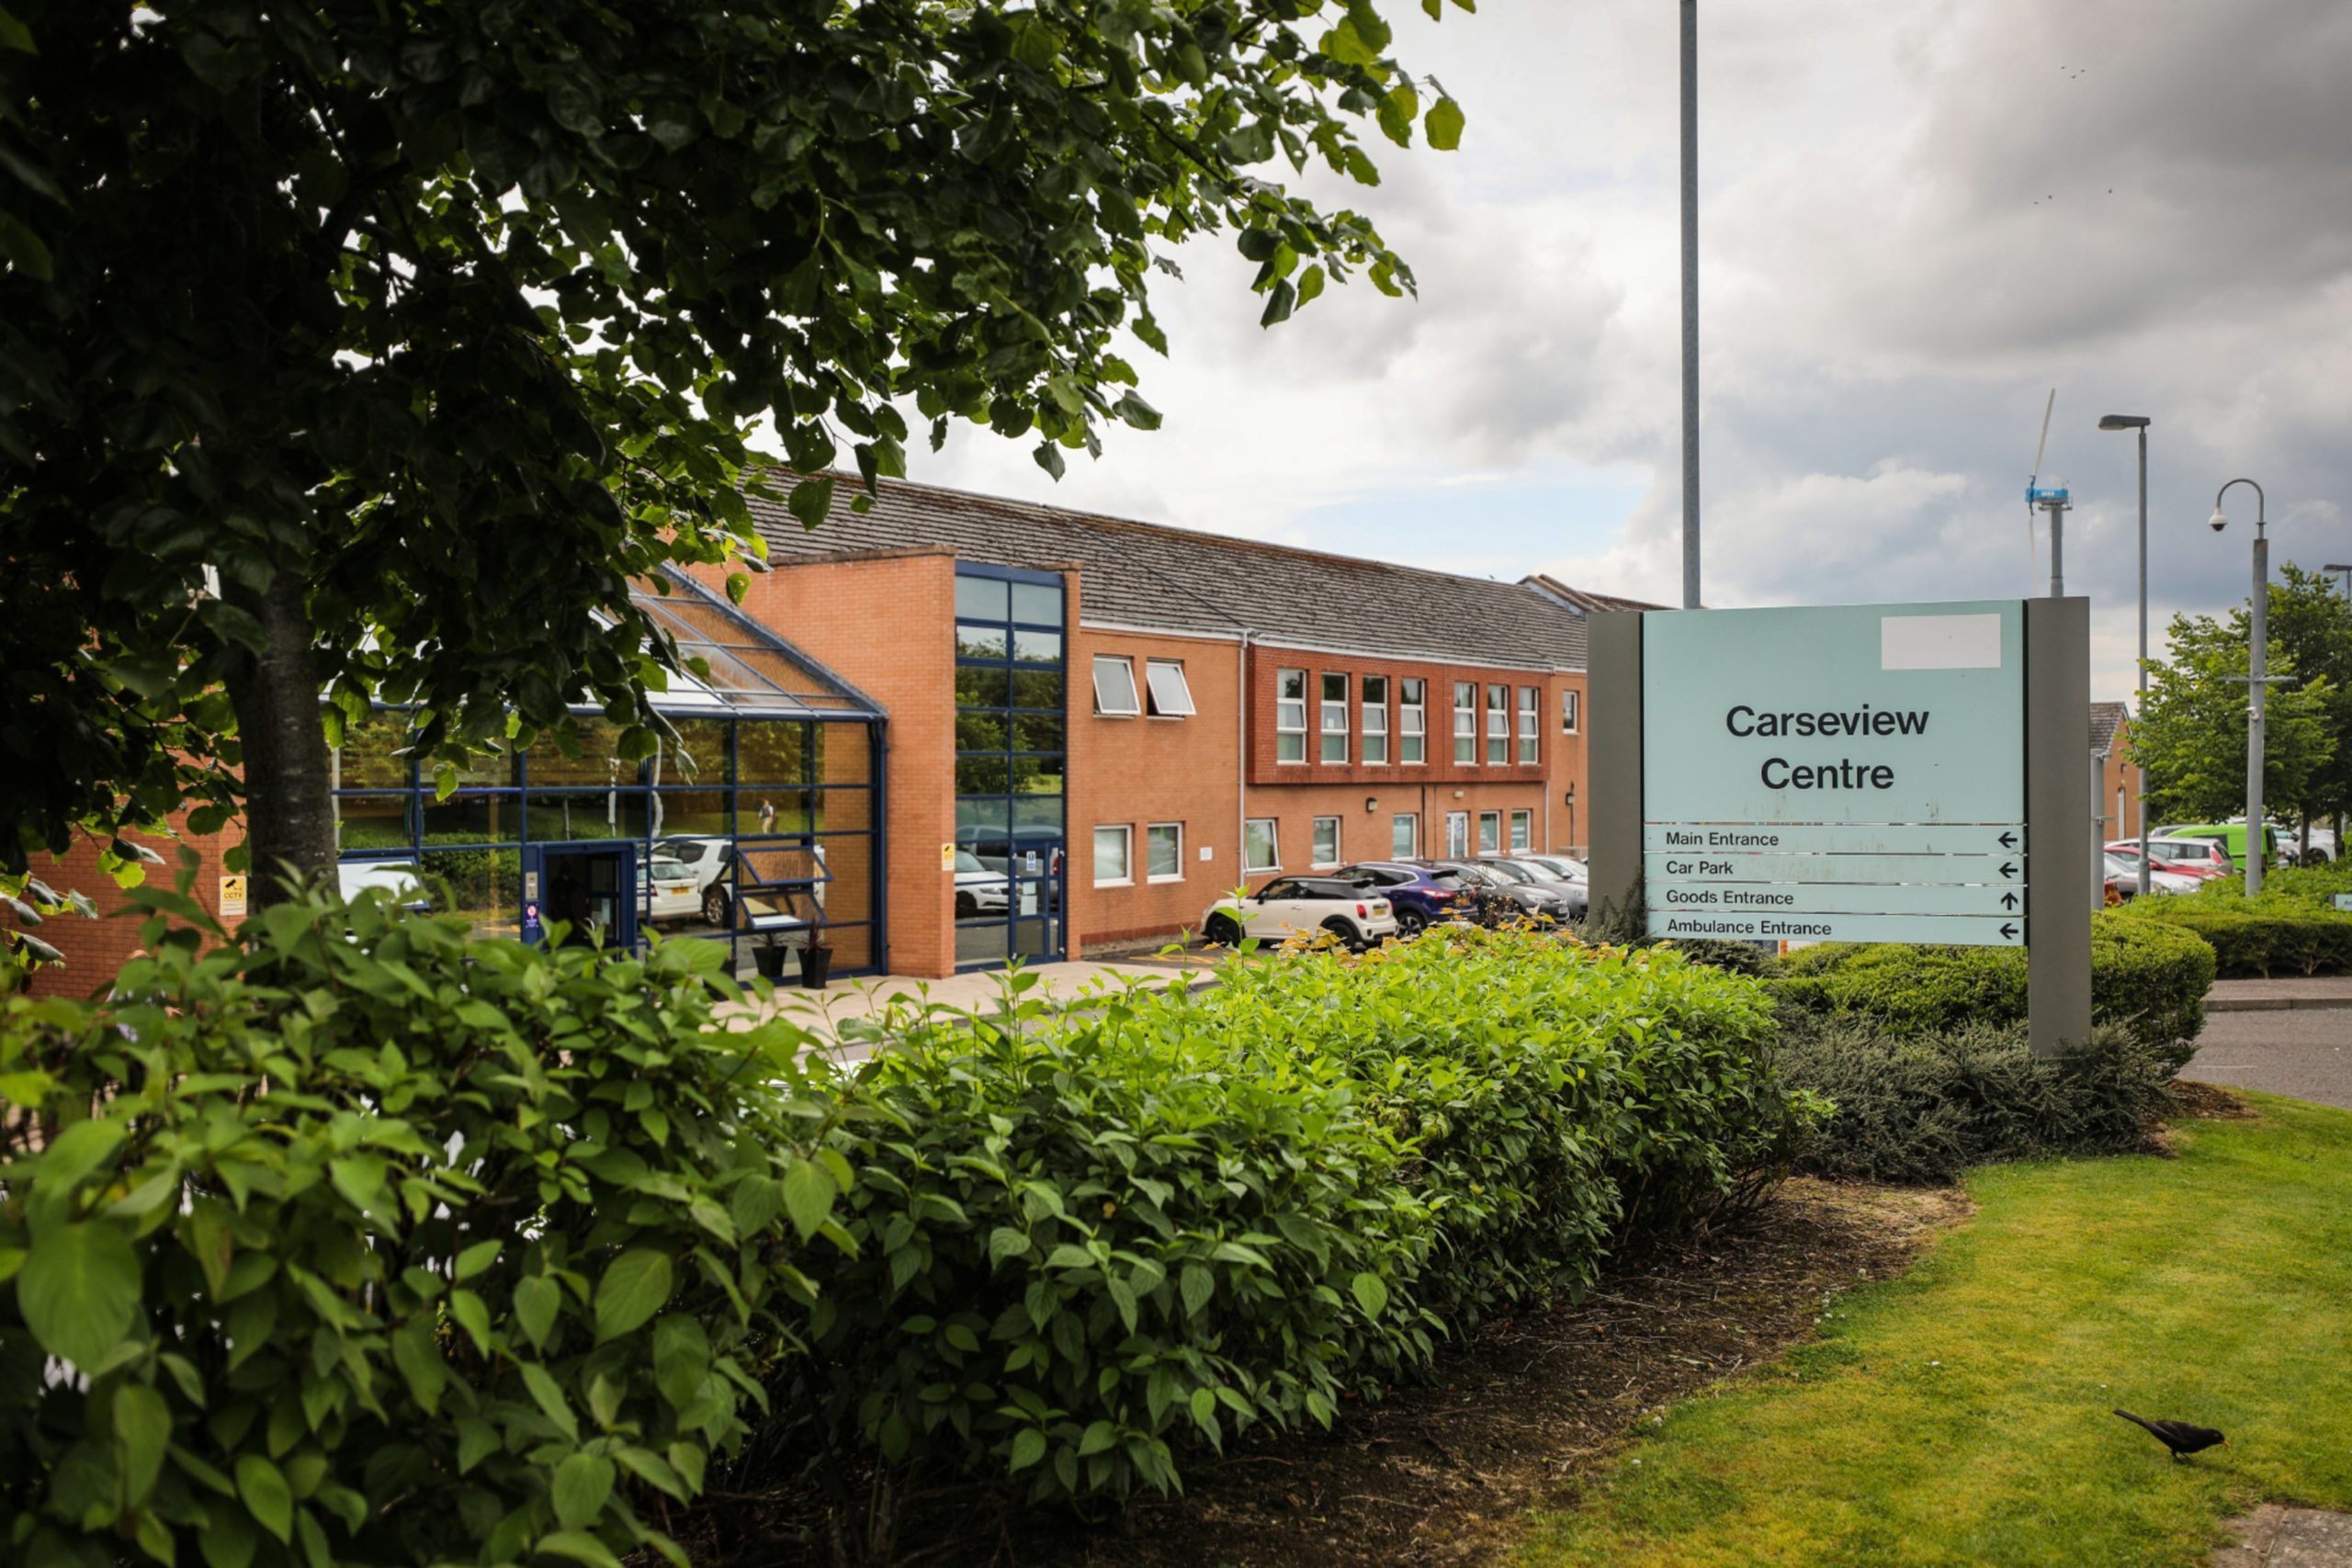 Courier/Tele News, file pics, CR0012081 . Pic shows; general view of the exterior of Carseview Hospital in Dundee. Wednesday, 24th July, 2019. Kris Miller/DCT Media.